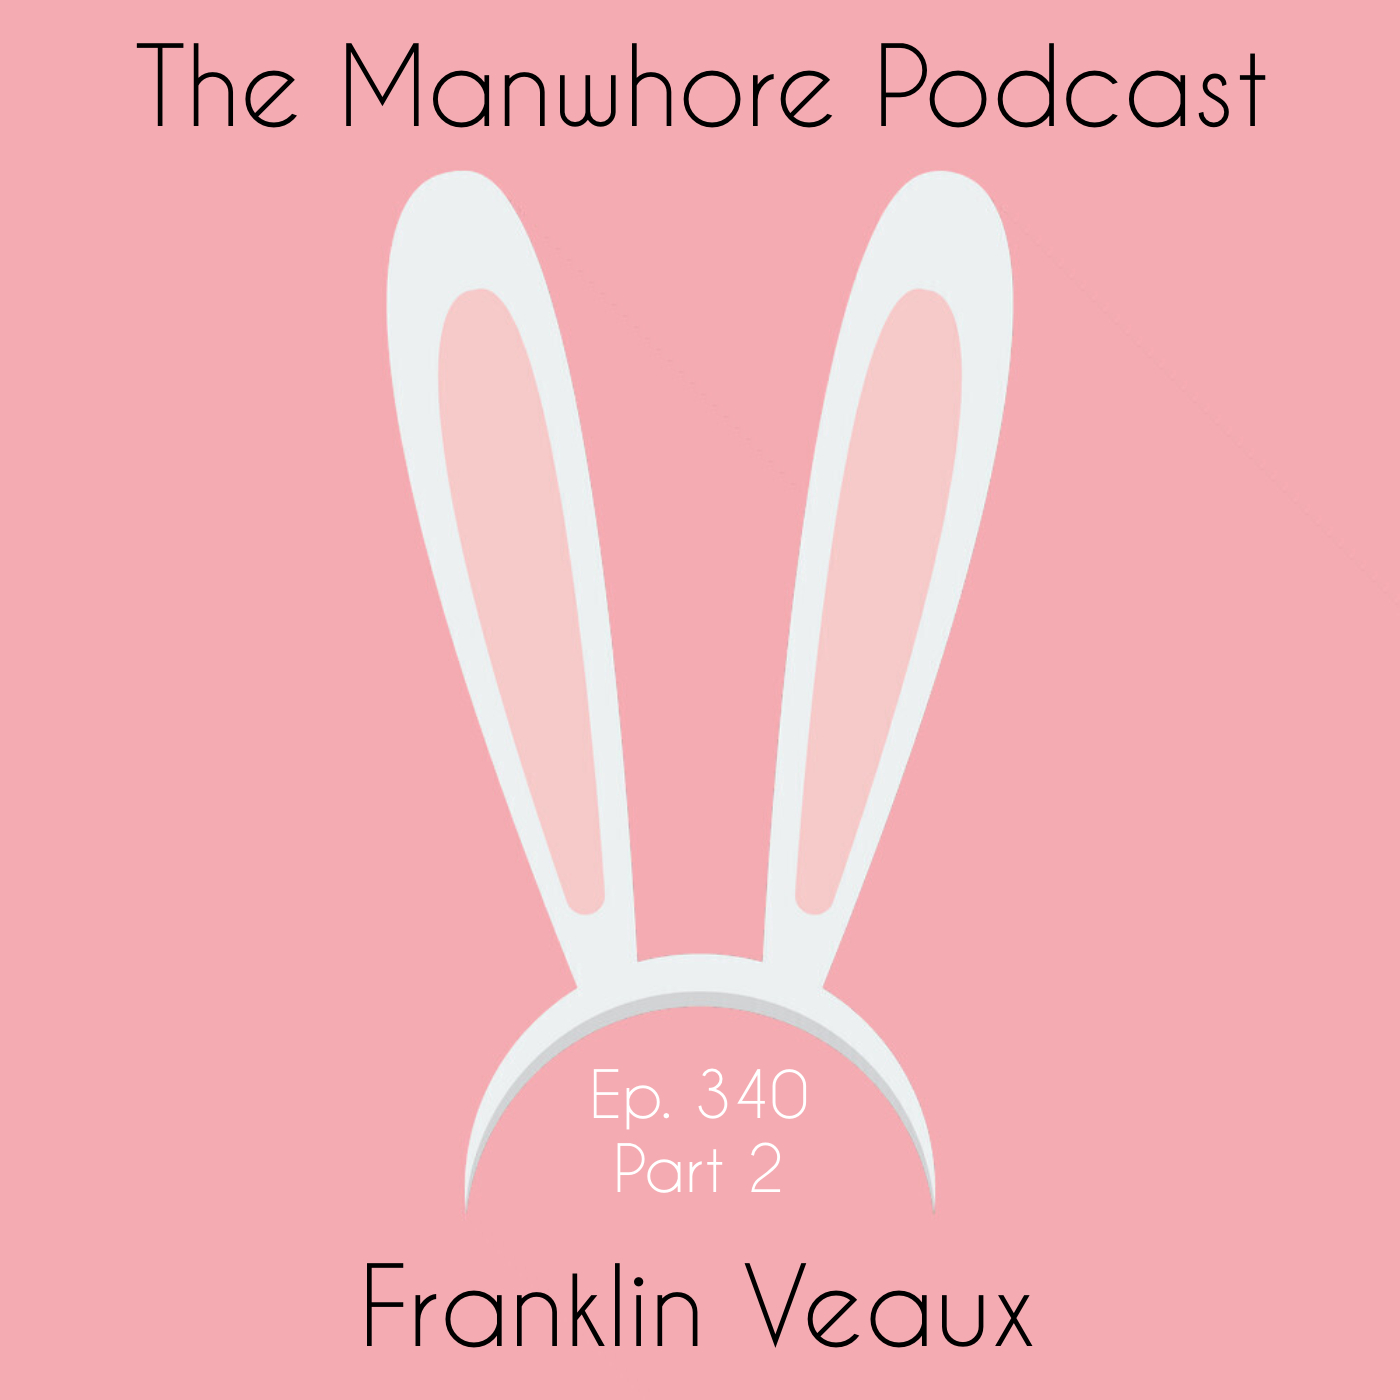 The Manwhore Podcast: A Sex-Positive Quest - Ep. 340: A Poly Influencer's Responsibility with Franklin Veaux (Part 2)